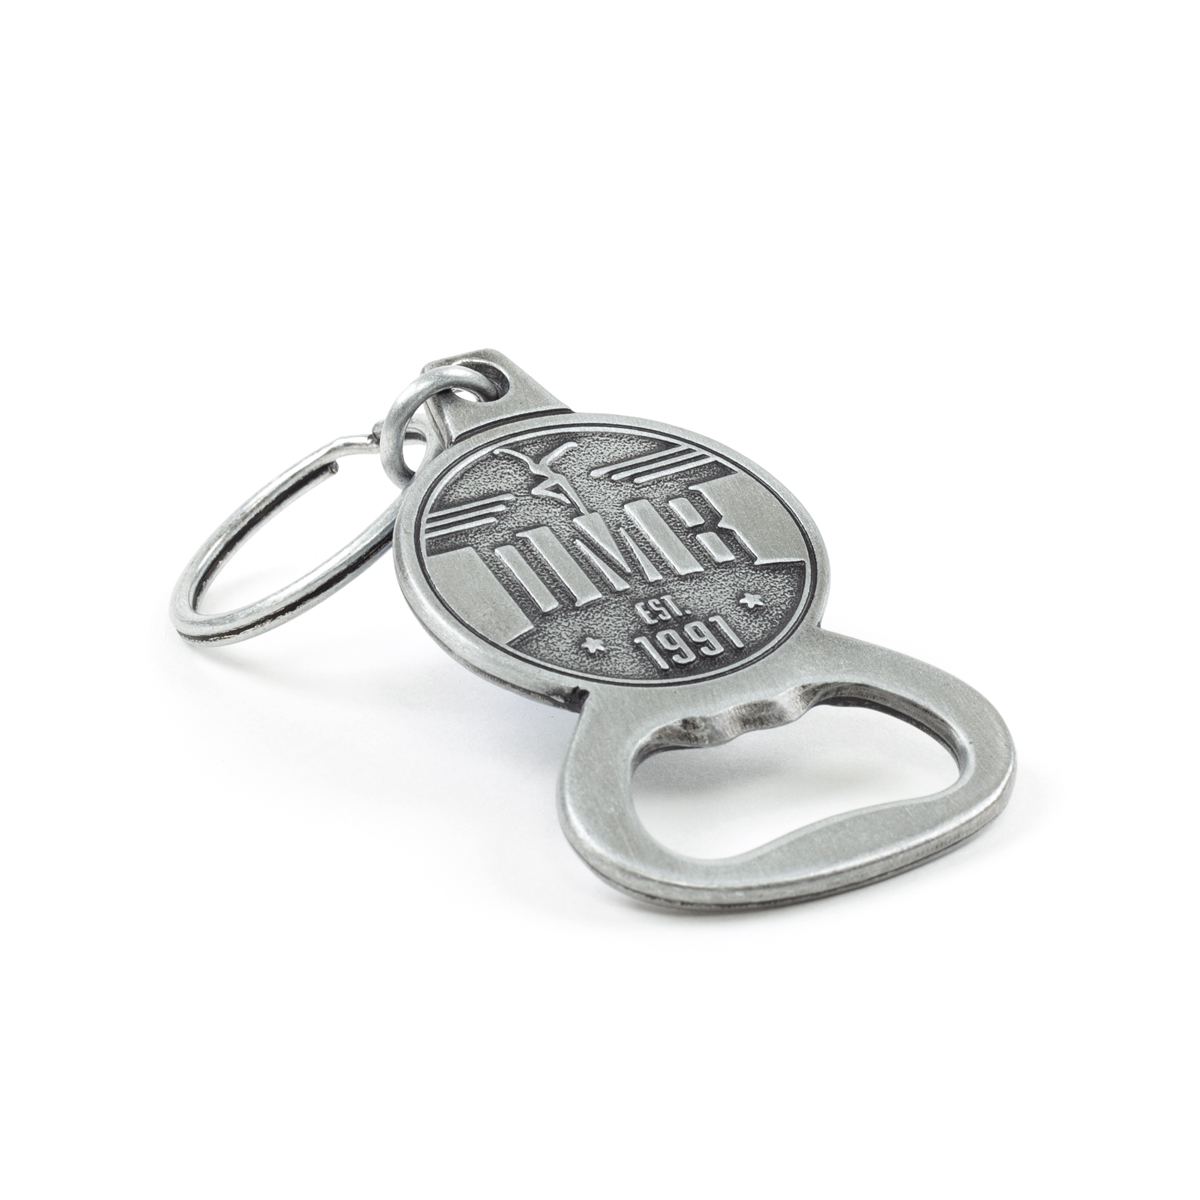 DMB Bottle Opener Keychain